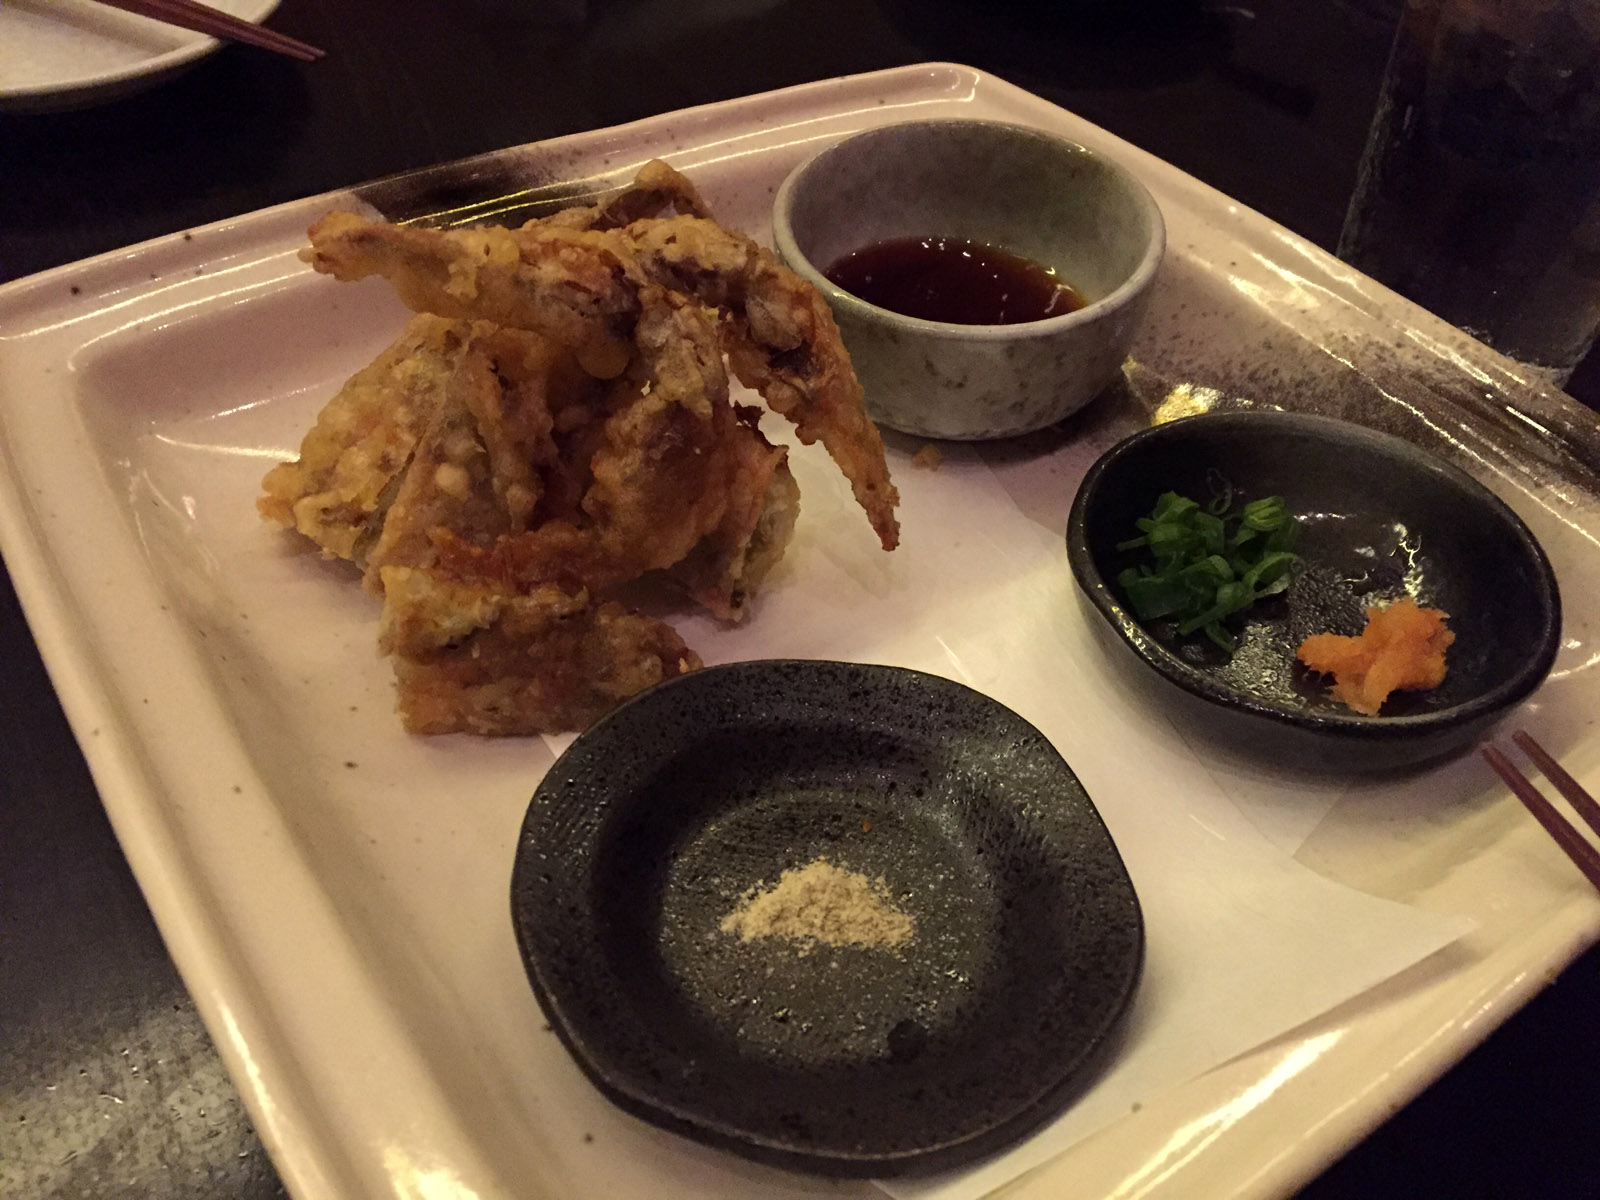 Soft Shell Crab. Another standout dish was the crab, which was lightly battered and fried to perfection with a trio of side dishes we were instructed to dip our pieces into to round out the flavor. I really loved this iteration of crab, and this was one of my favorite bites of the evening.